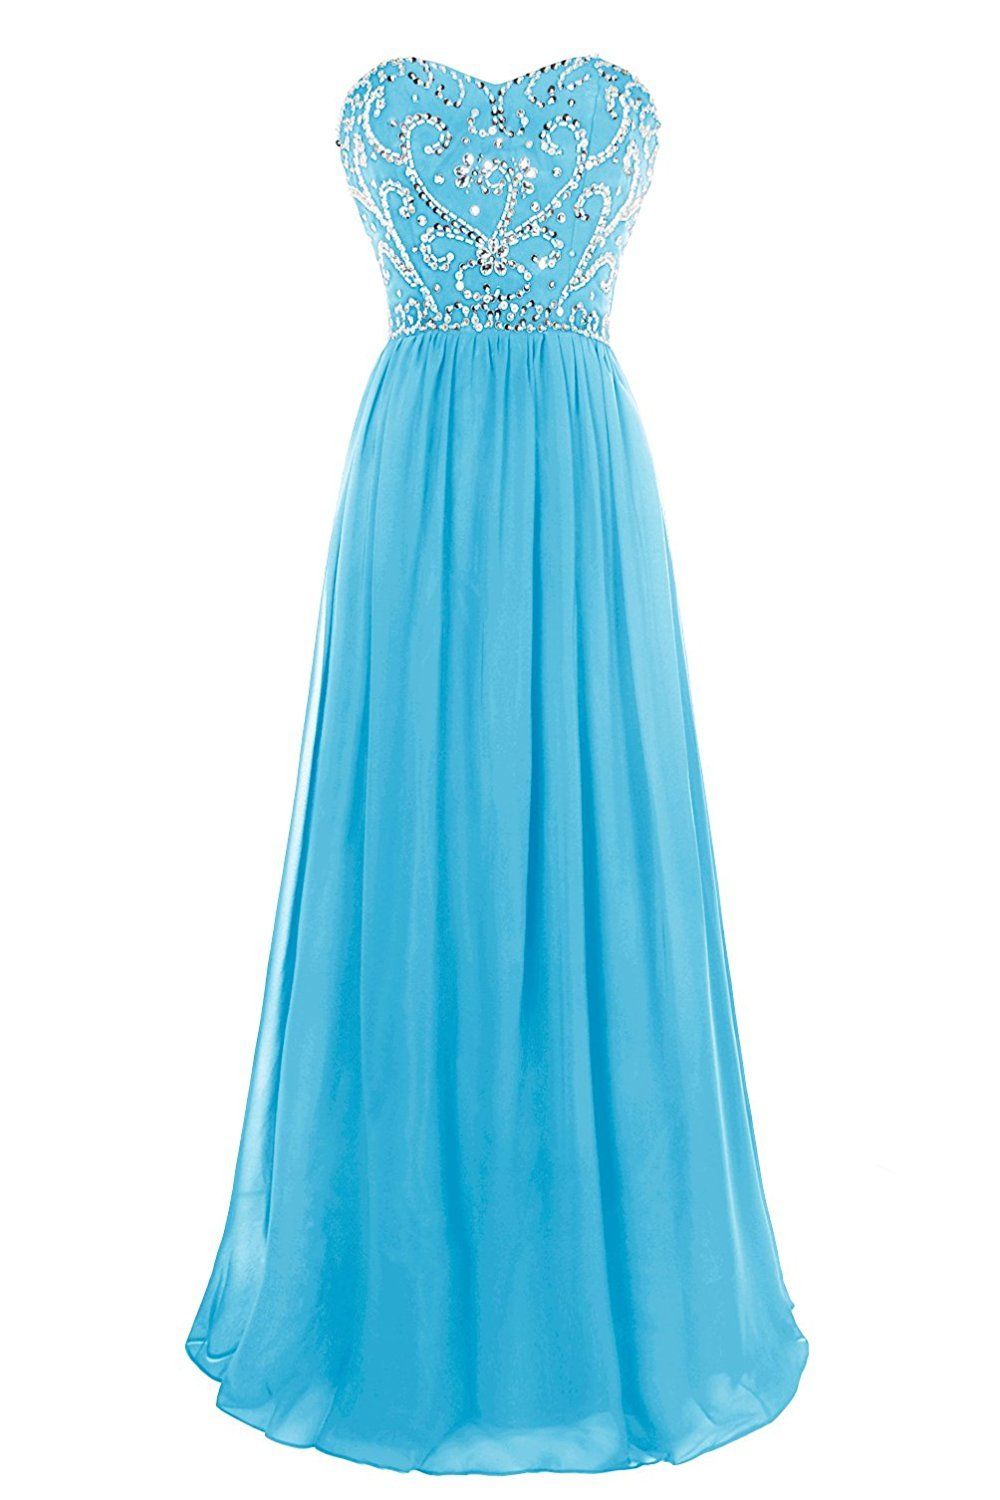 A-Line Sweetheart Prom Dresses Beaded Chiffon Floor Length Formal Evening Dress